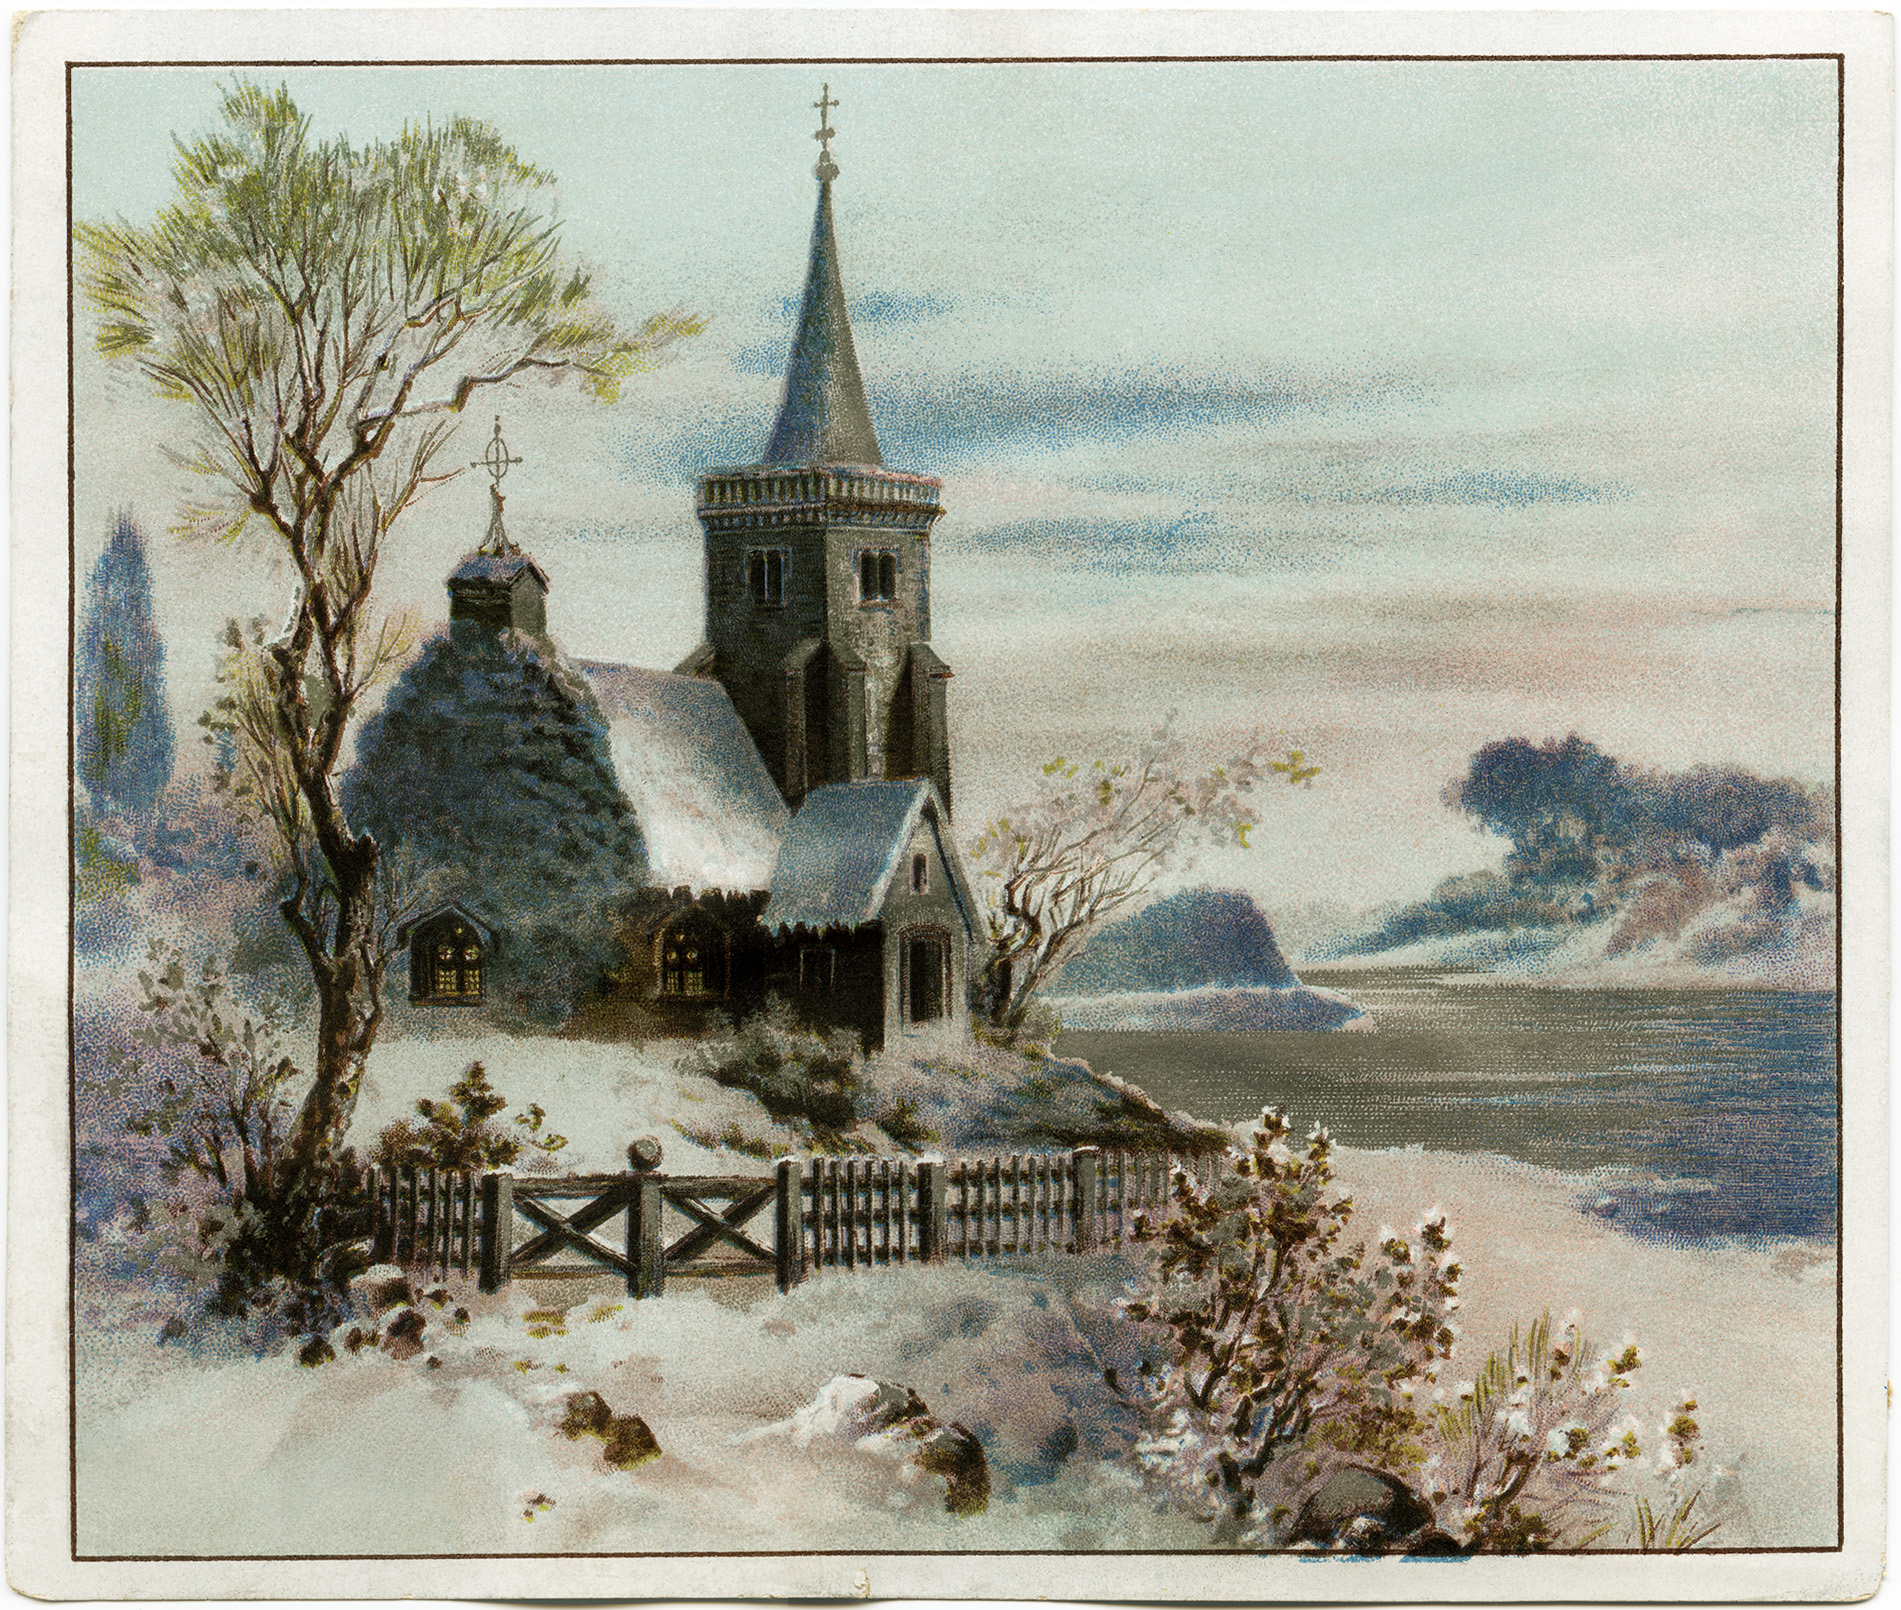 Card Vintage Christmas Clip Art Snowy Winter Country Scene Old